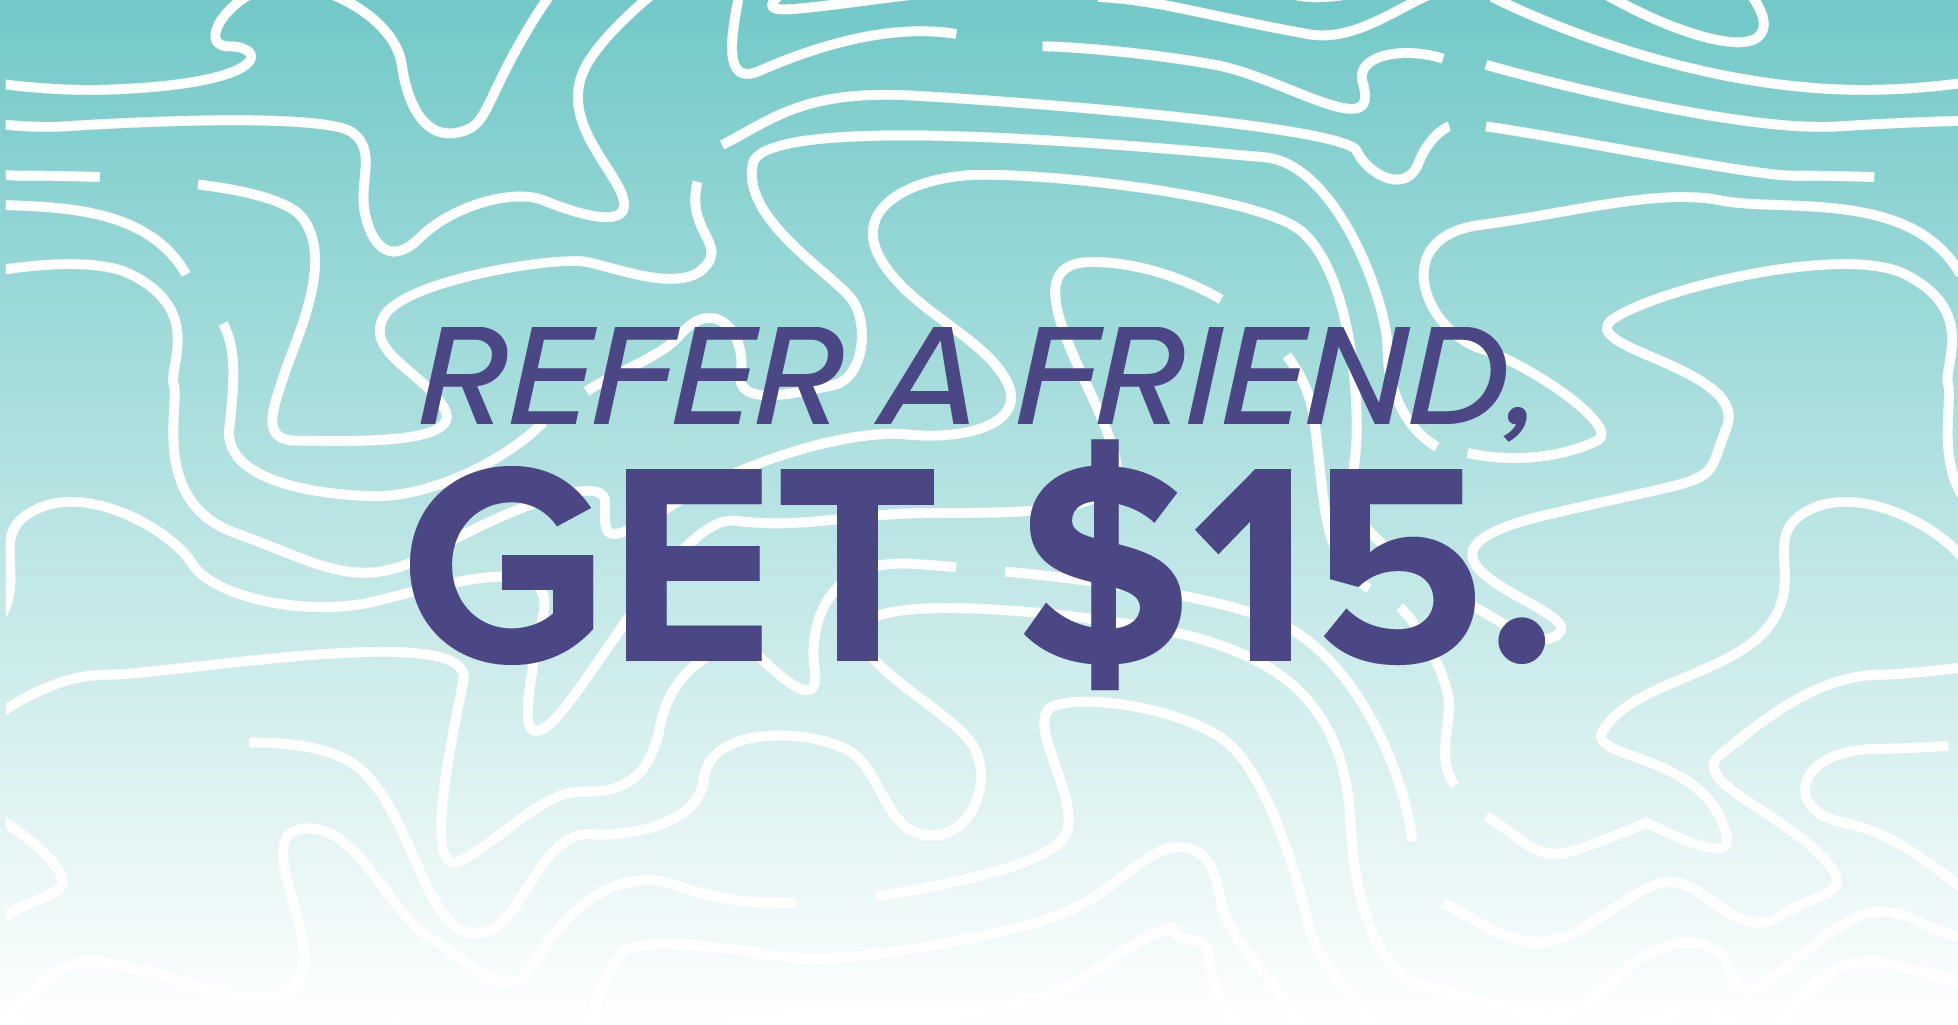 skooli refer a friend